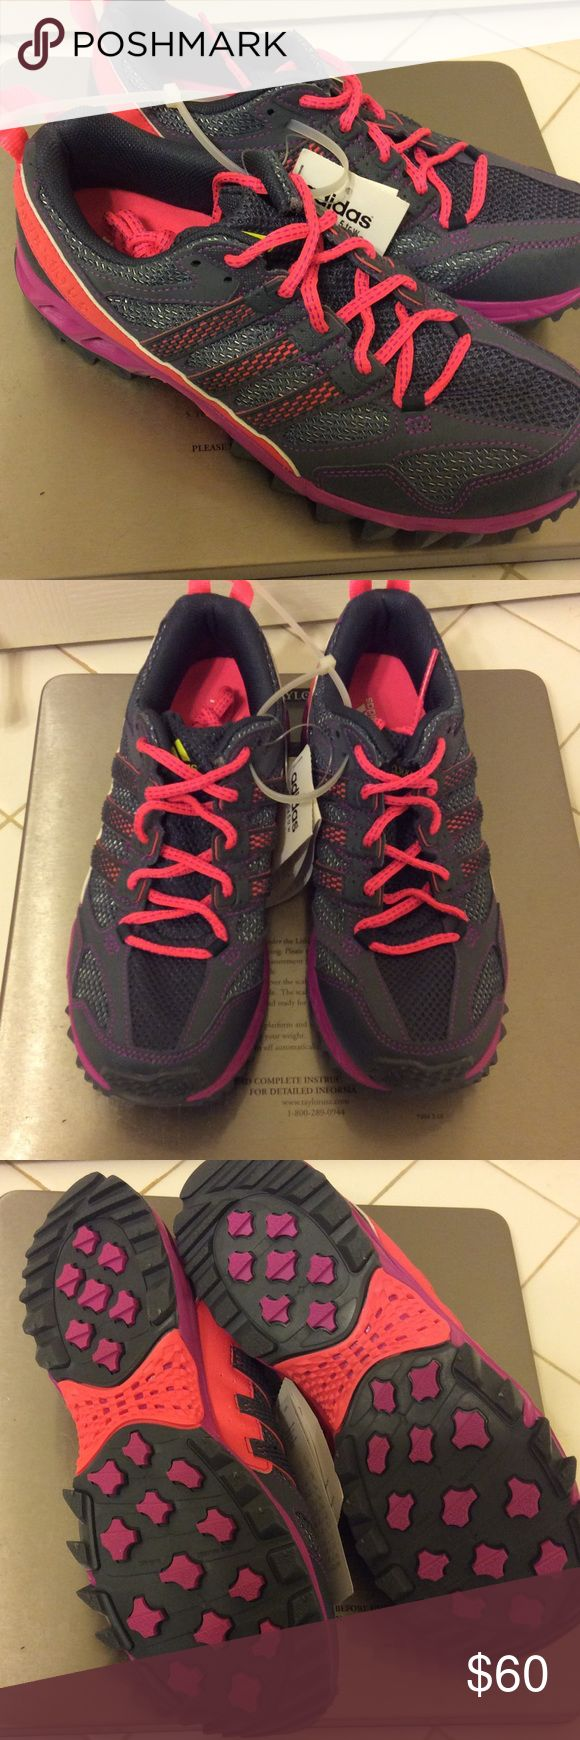 ADIDAS size 7.5 trail running shoes New with tags ADIDAS trail running shoes size US 7.5. Adidas Shoes Athletic Shoes